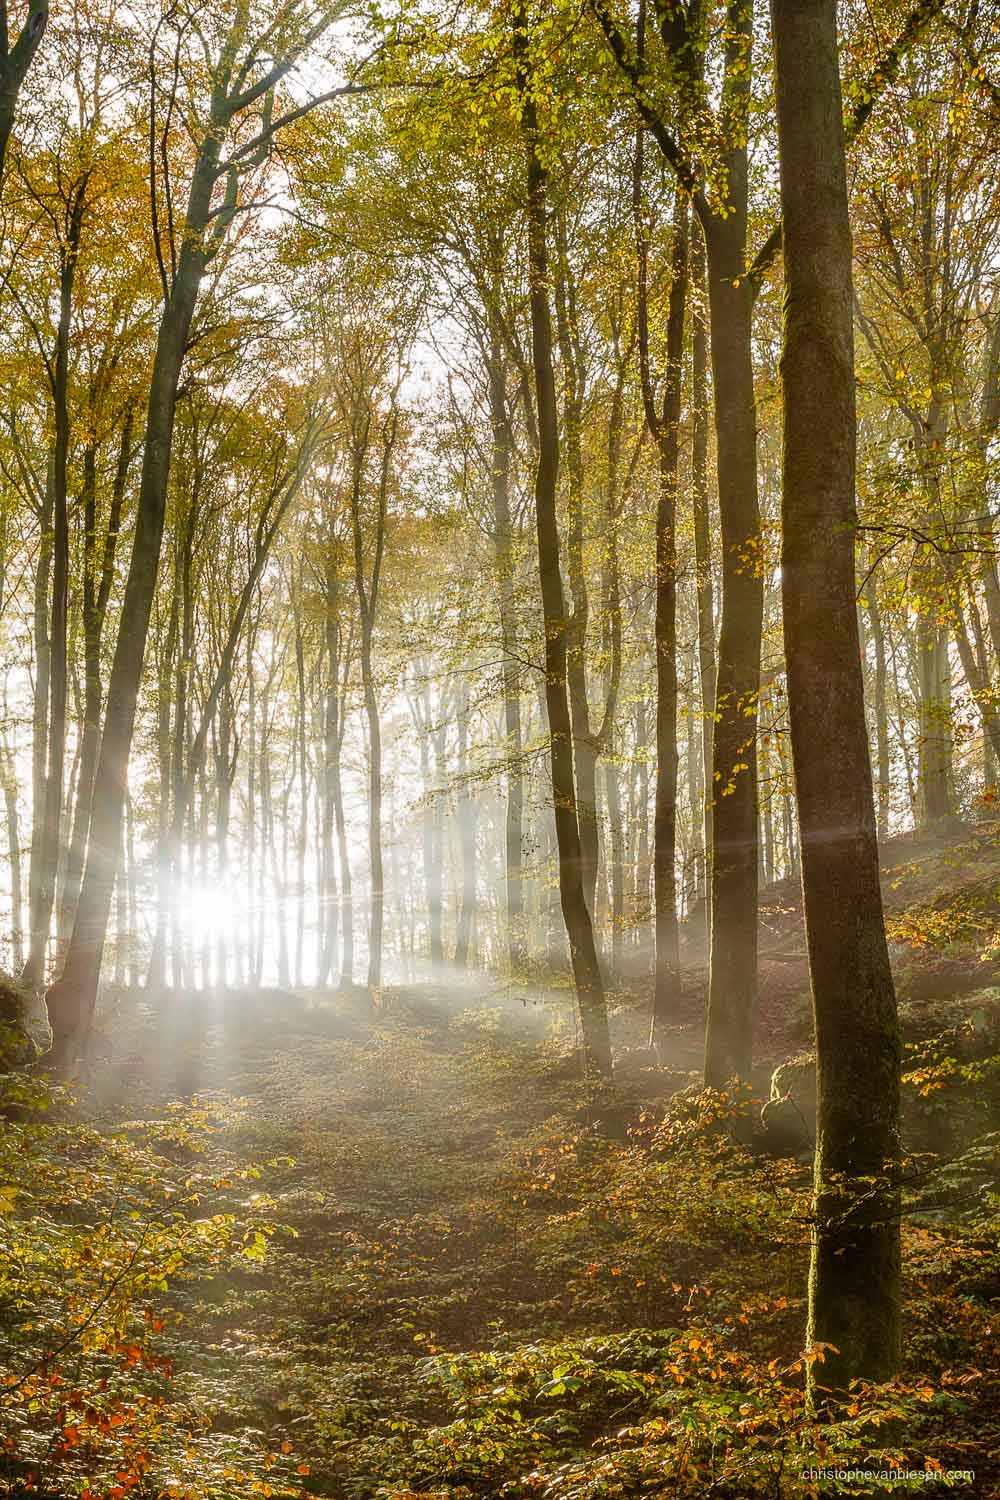 Autumn in Luxembourg - Autumn in Luxembourg's forests in the Mullerthal region - Glimpse of Light